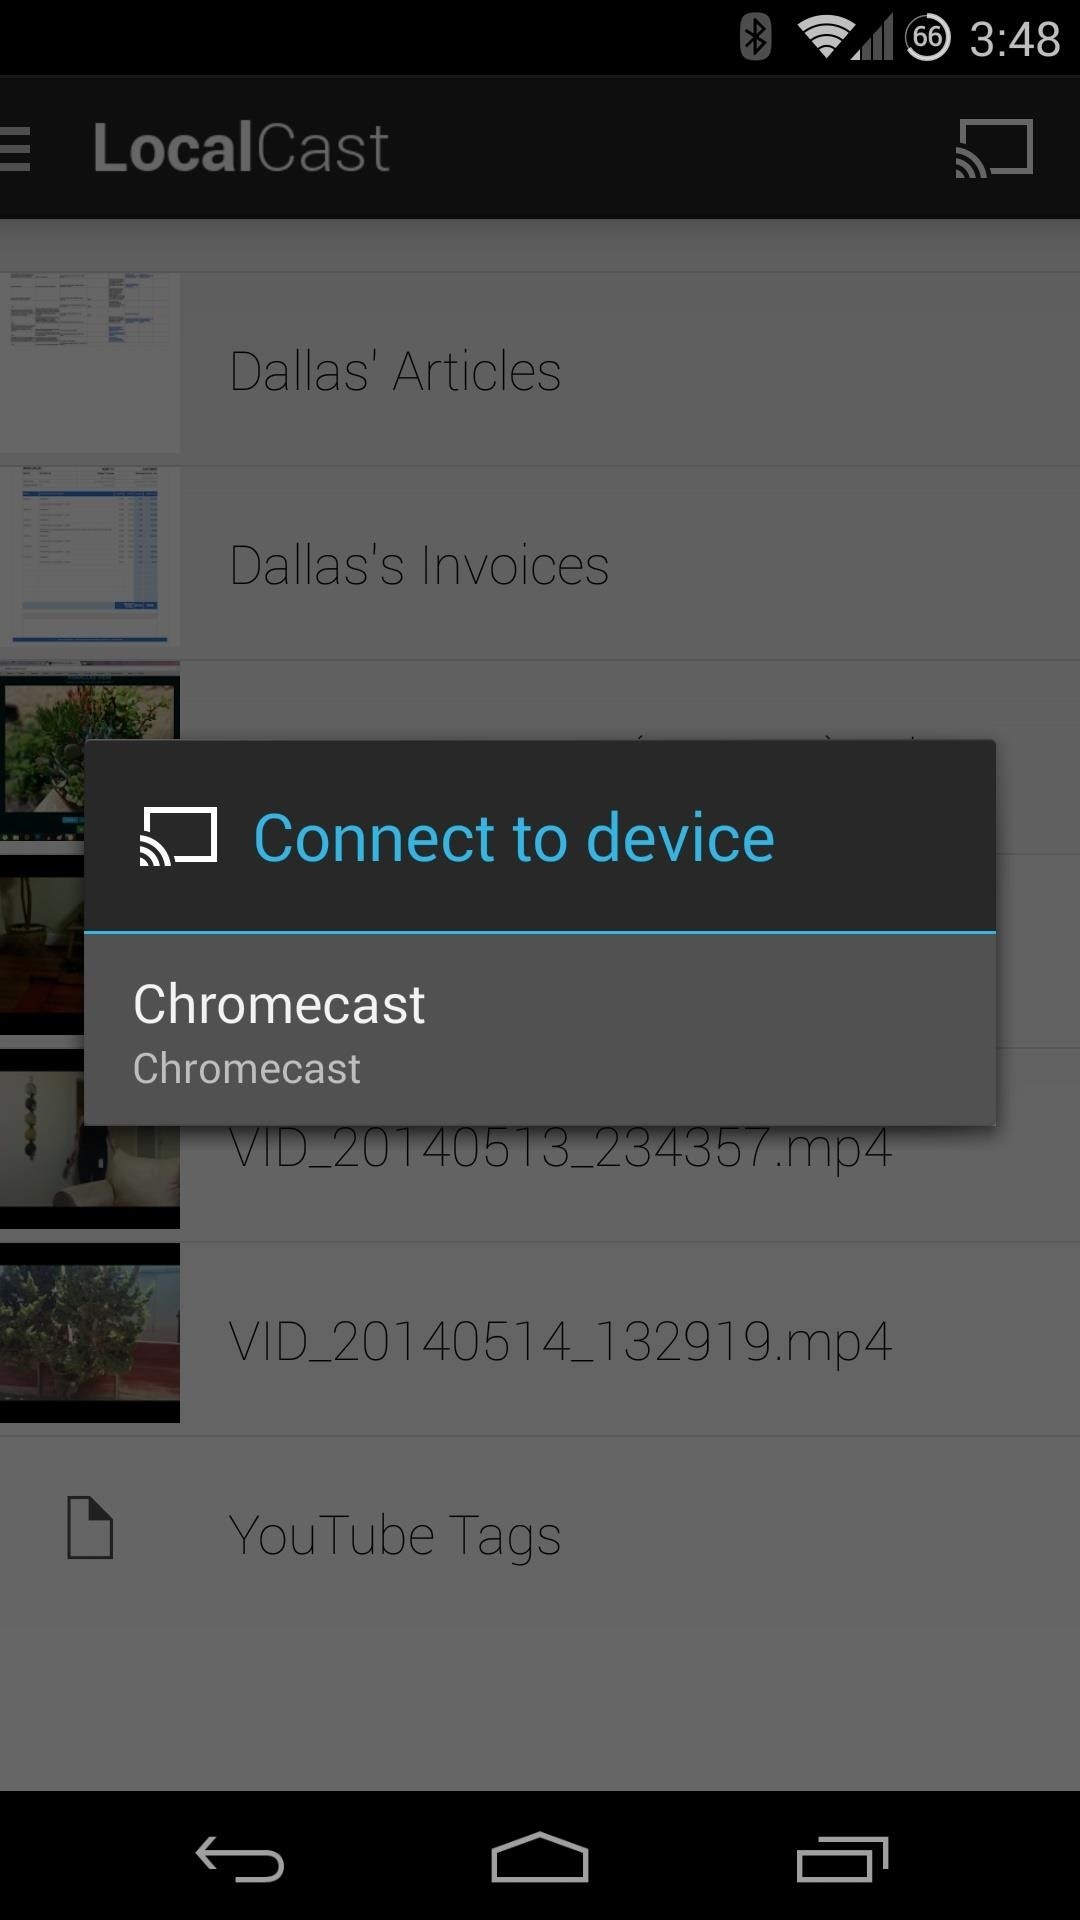 How to Cast Videos from Google Drive to Your TV with Chromecast